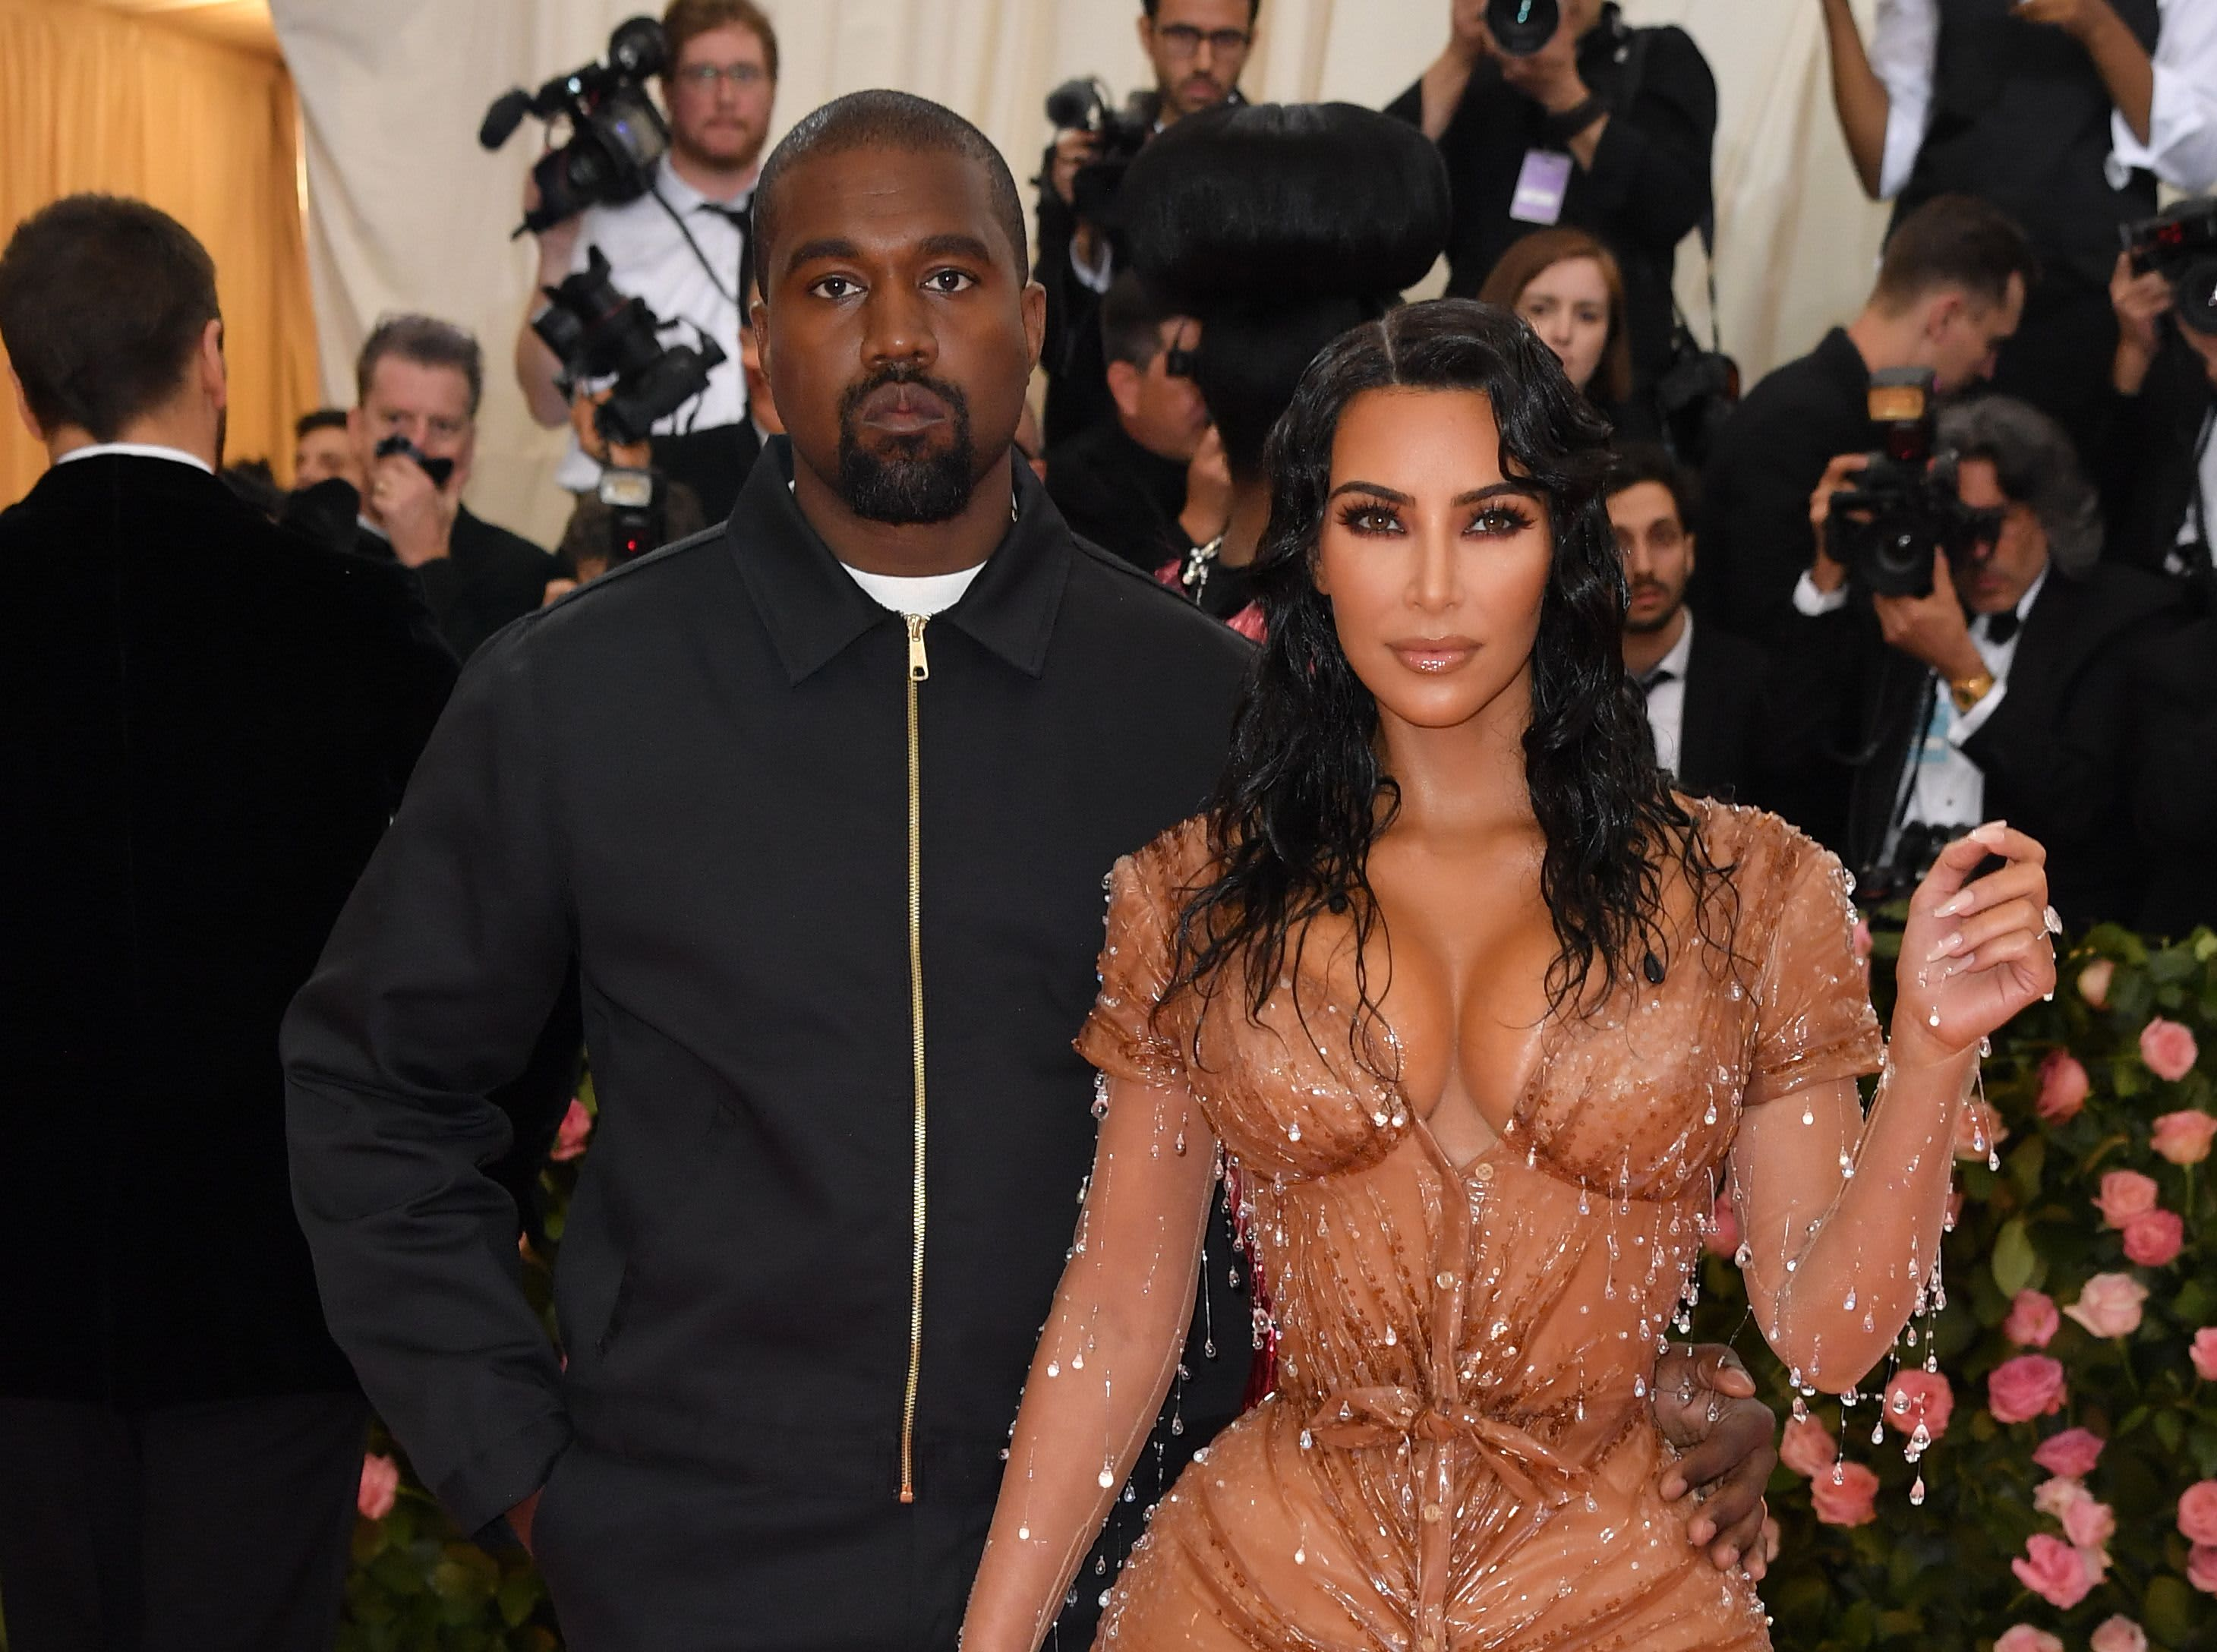 Kanye West's comeback: from $53 million in debt to making over $150 million in a year